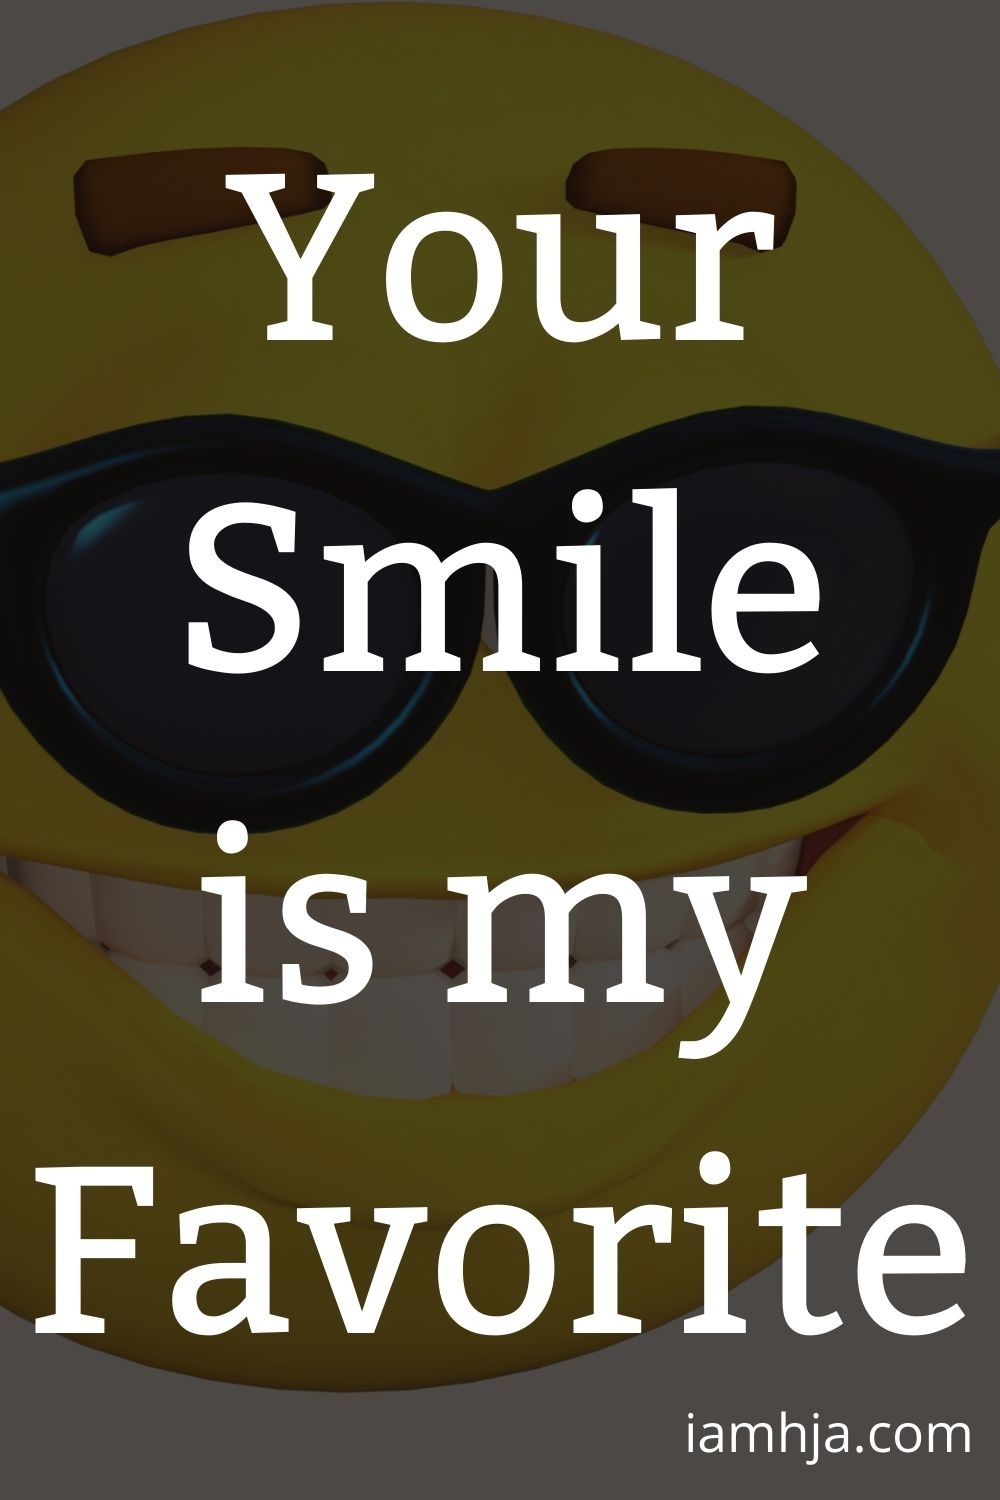 Your smile is my favorite